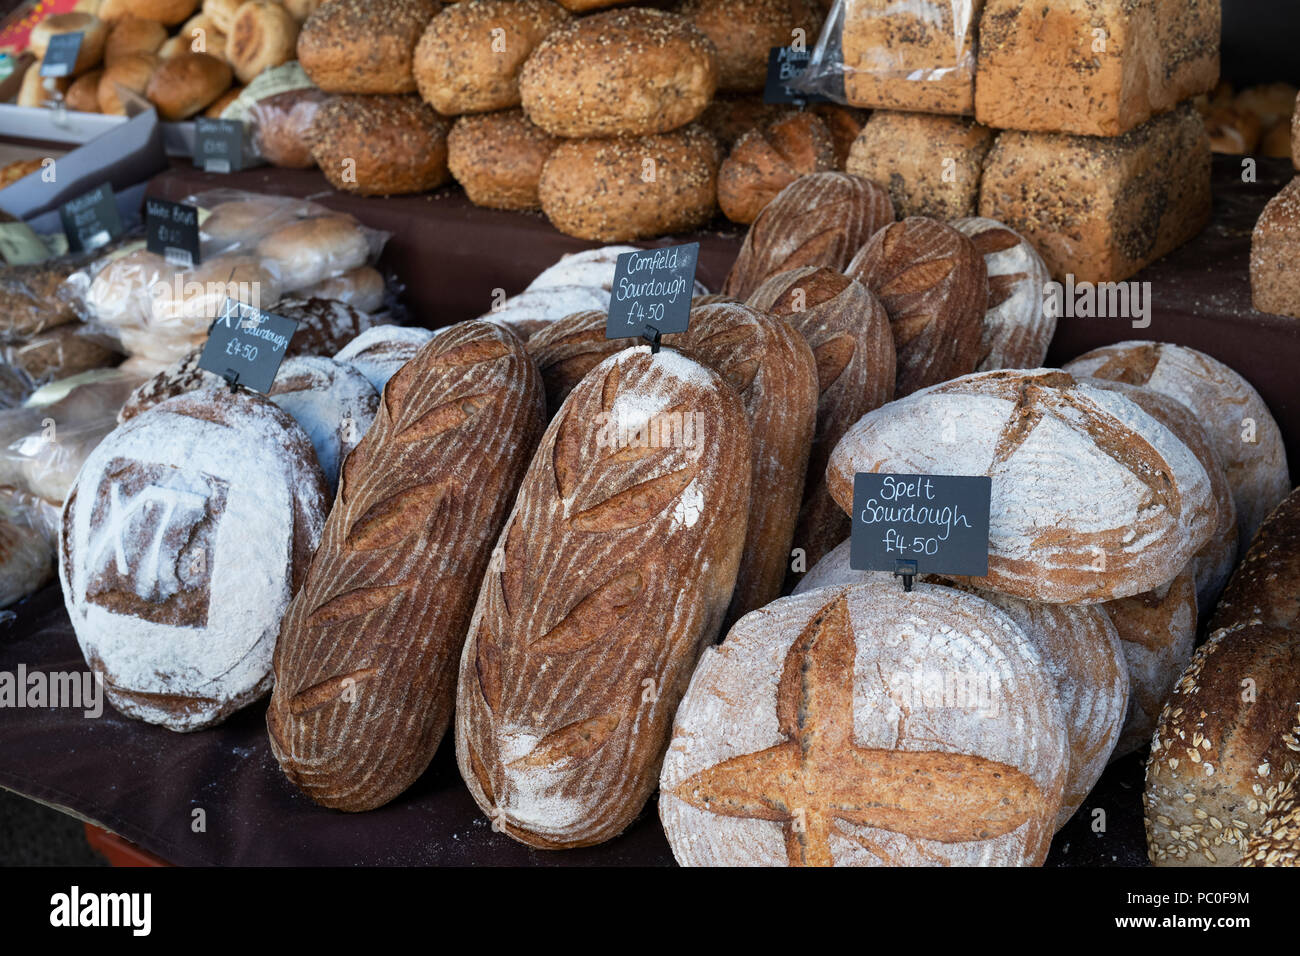 Sourdough bread for sale on a stall at a farmers market. Deddington, Oxfordshire, England - Stock Image